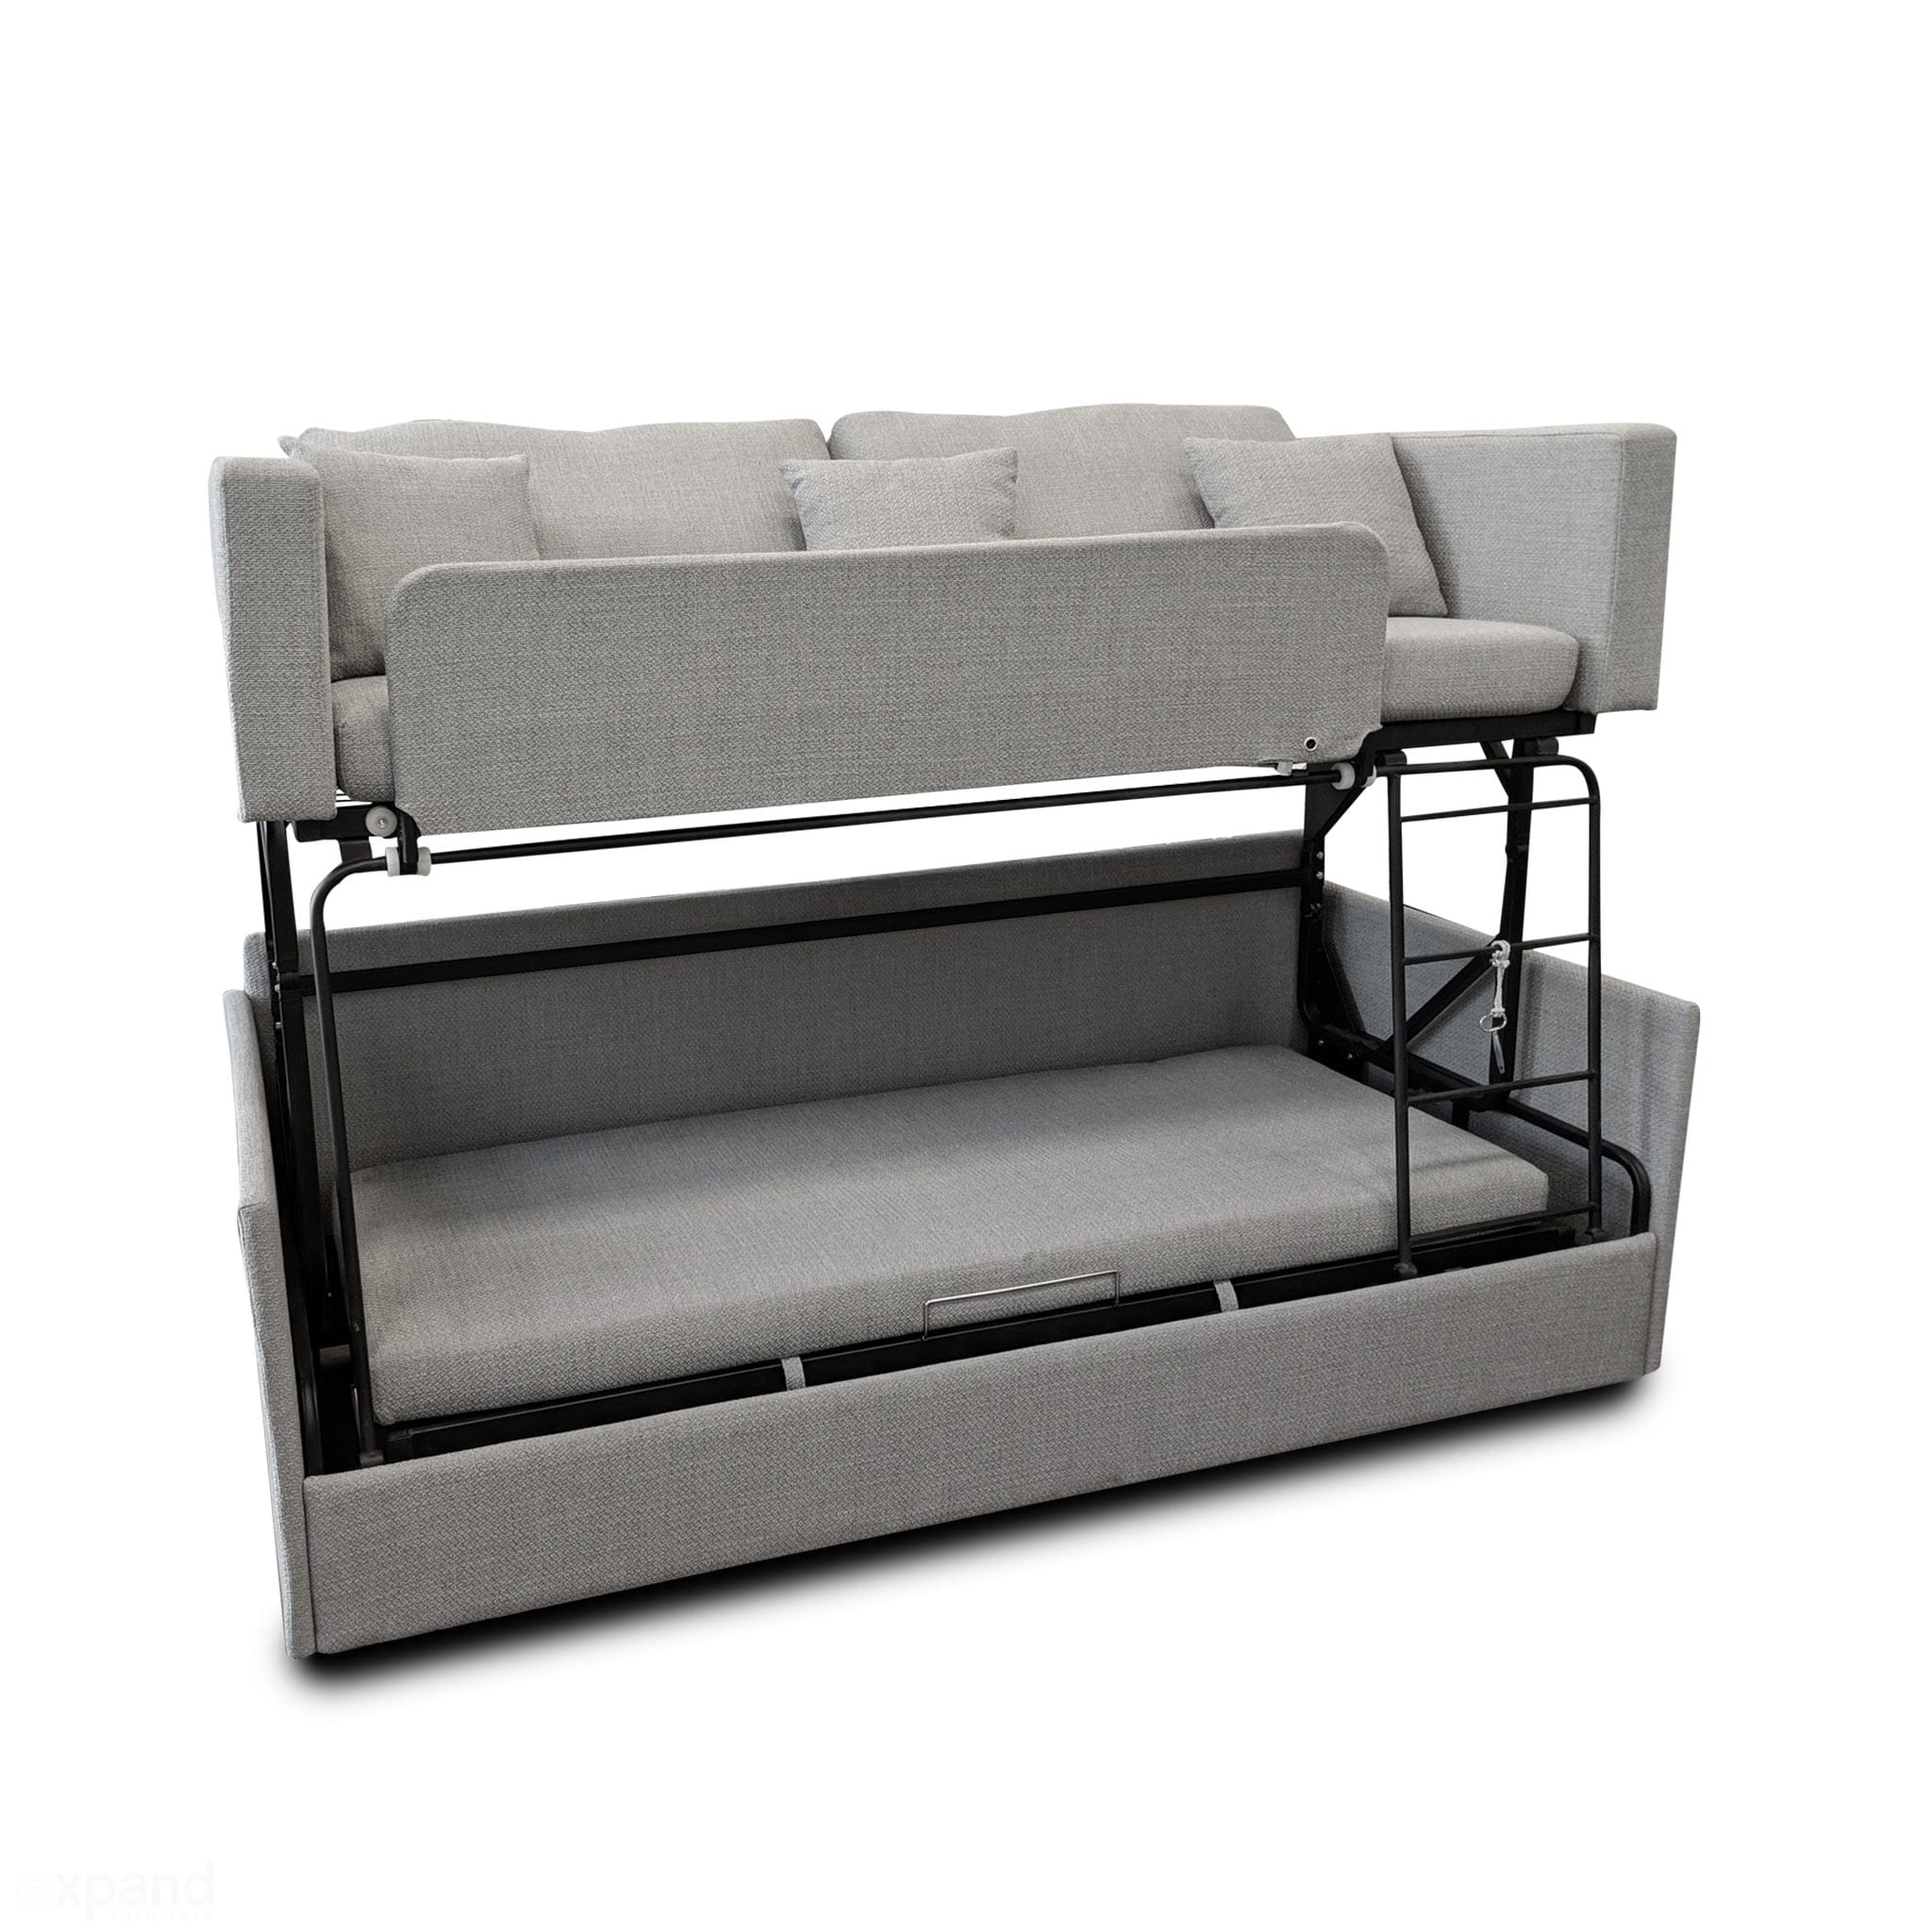 Marvelous The Dormire Bunk Bed Couch Transformer Short Links Chair Design For Home Short Linksinfo